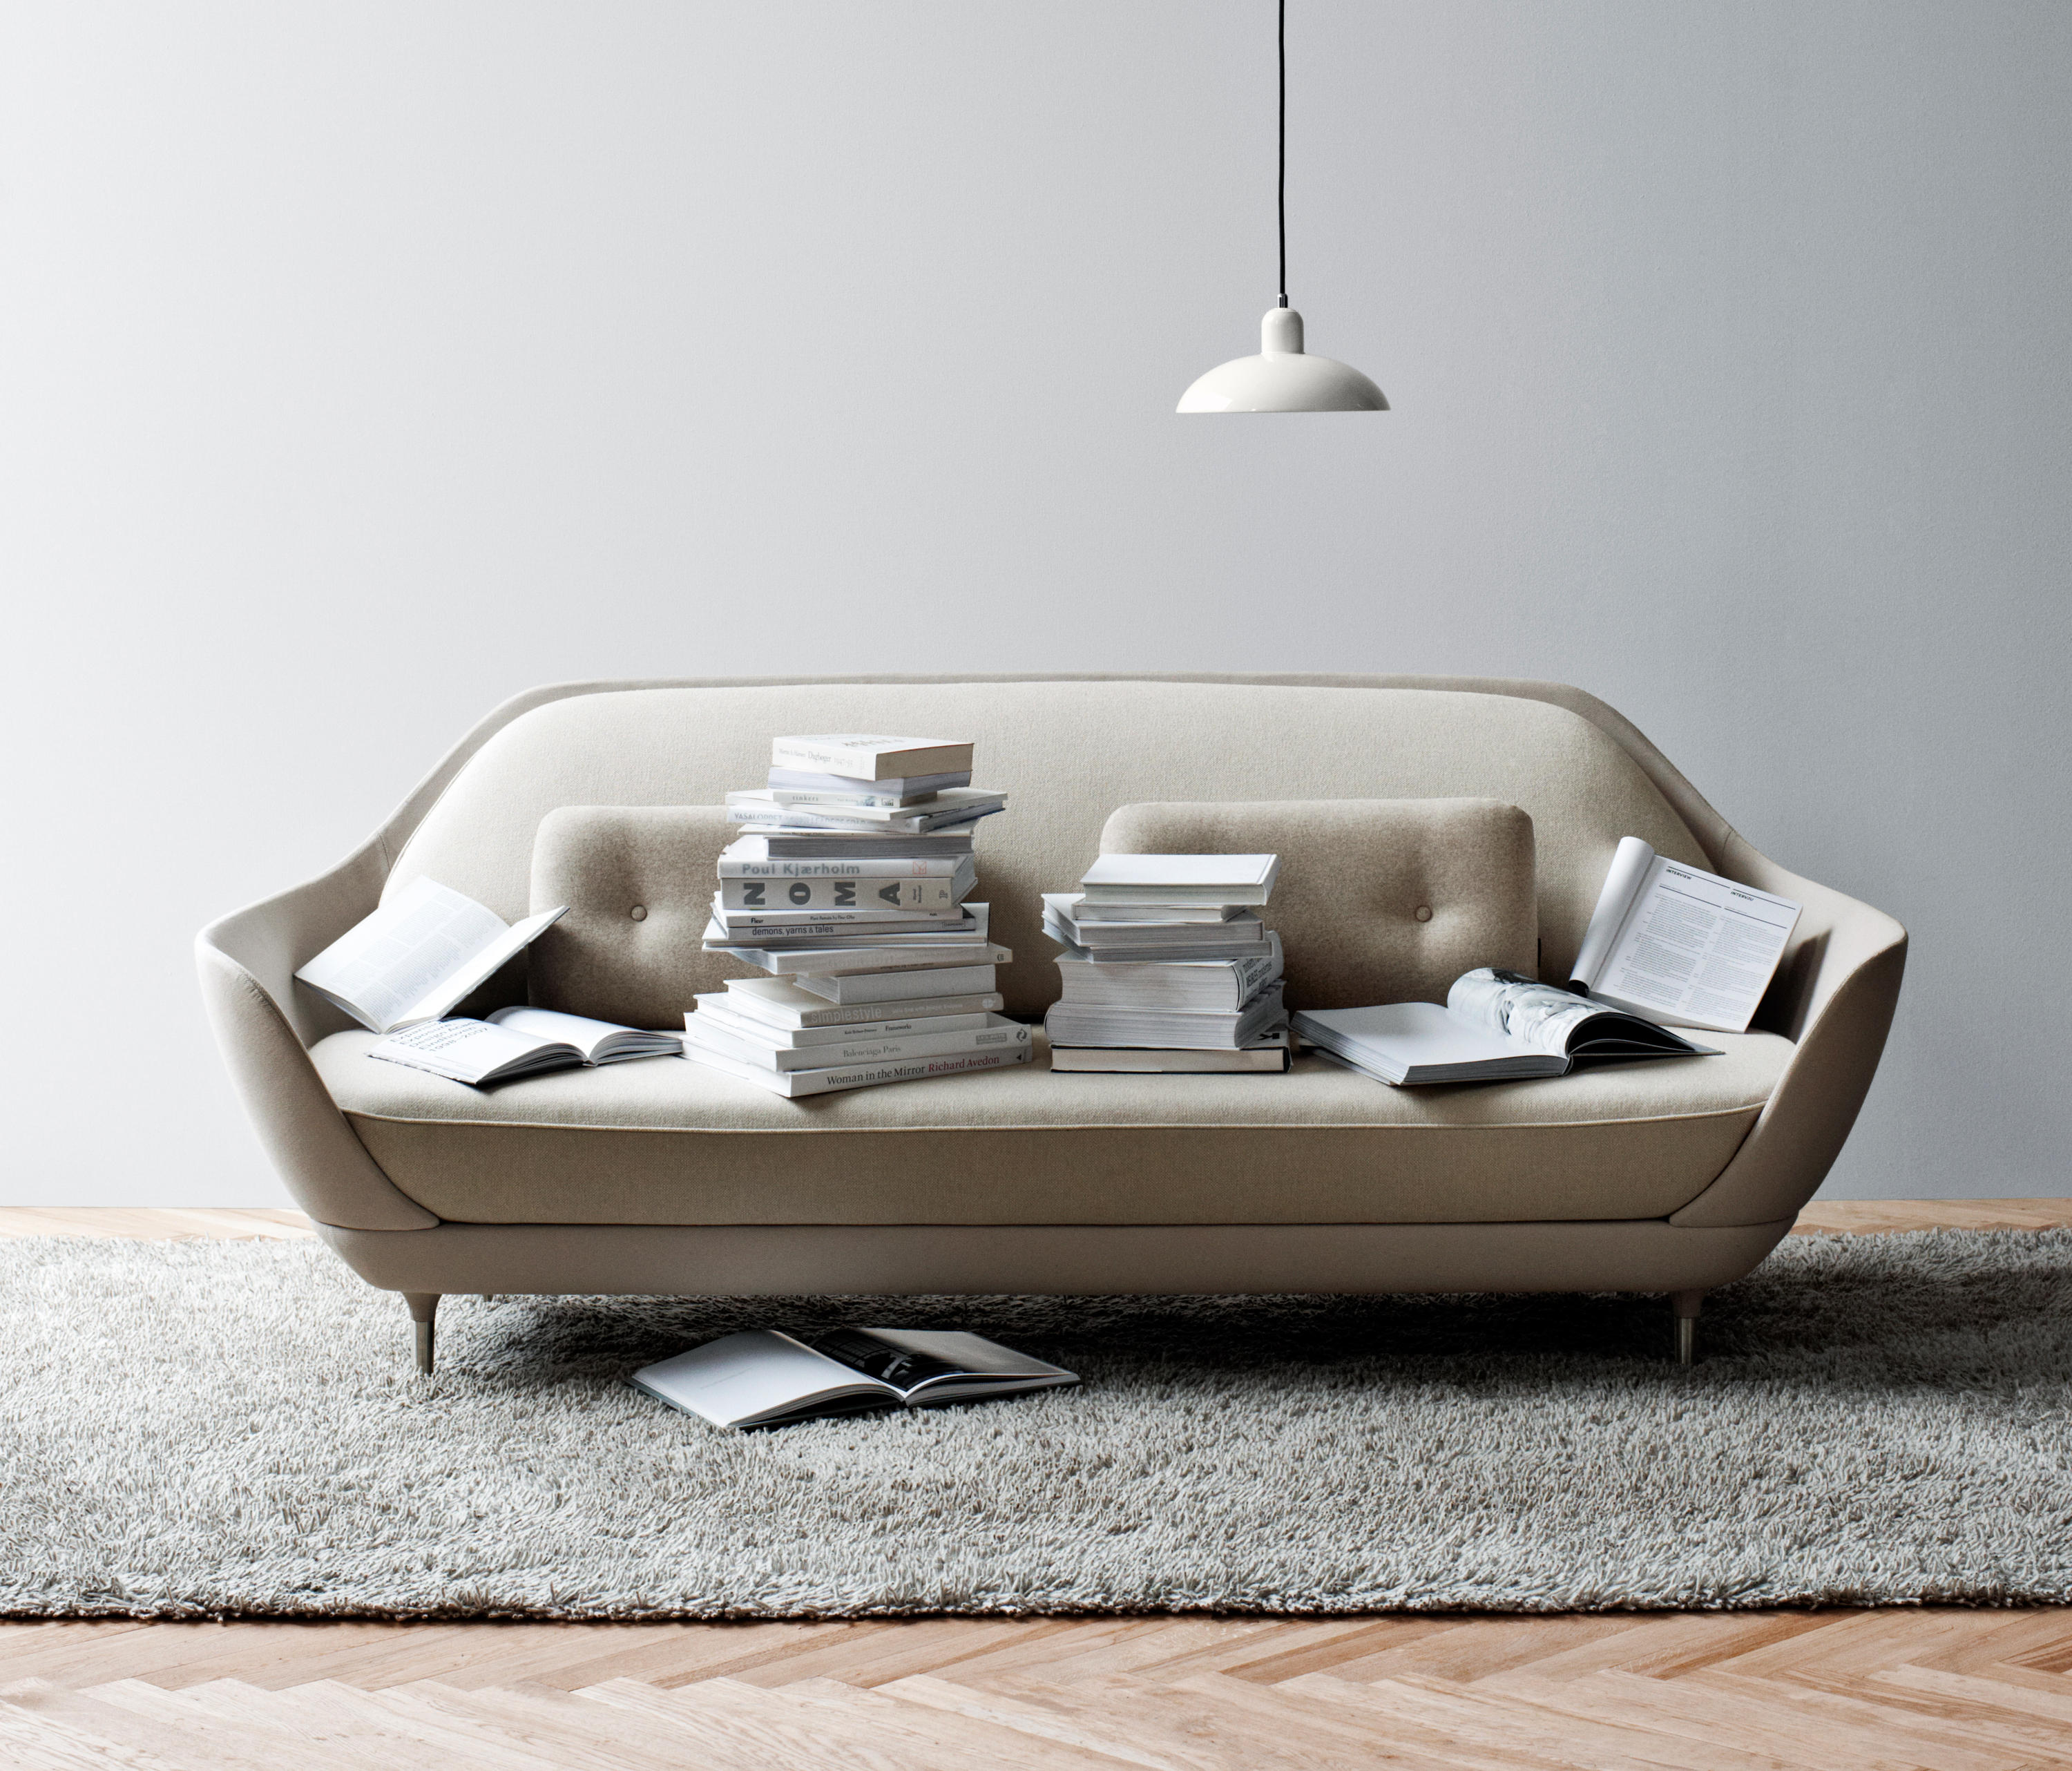 Favn sofa loungesofas von fritz hansen architonic for Vinilos decorativos para entradas